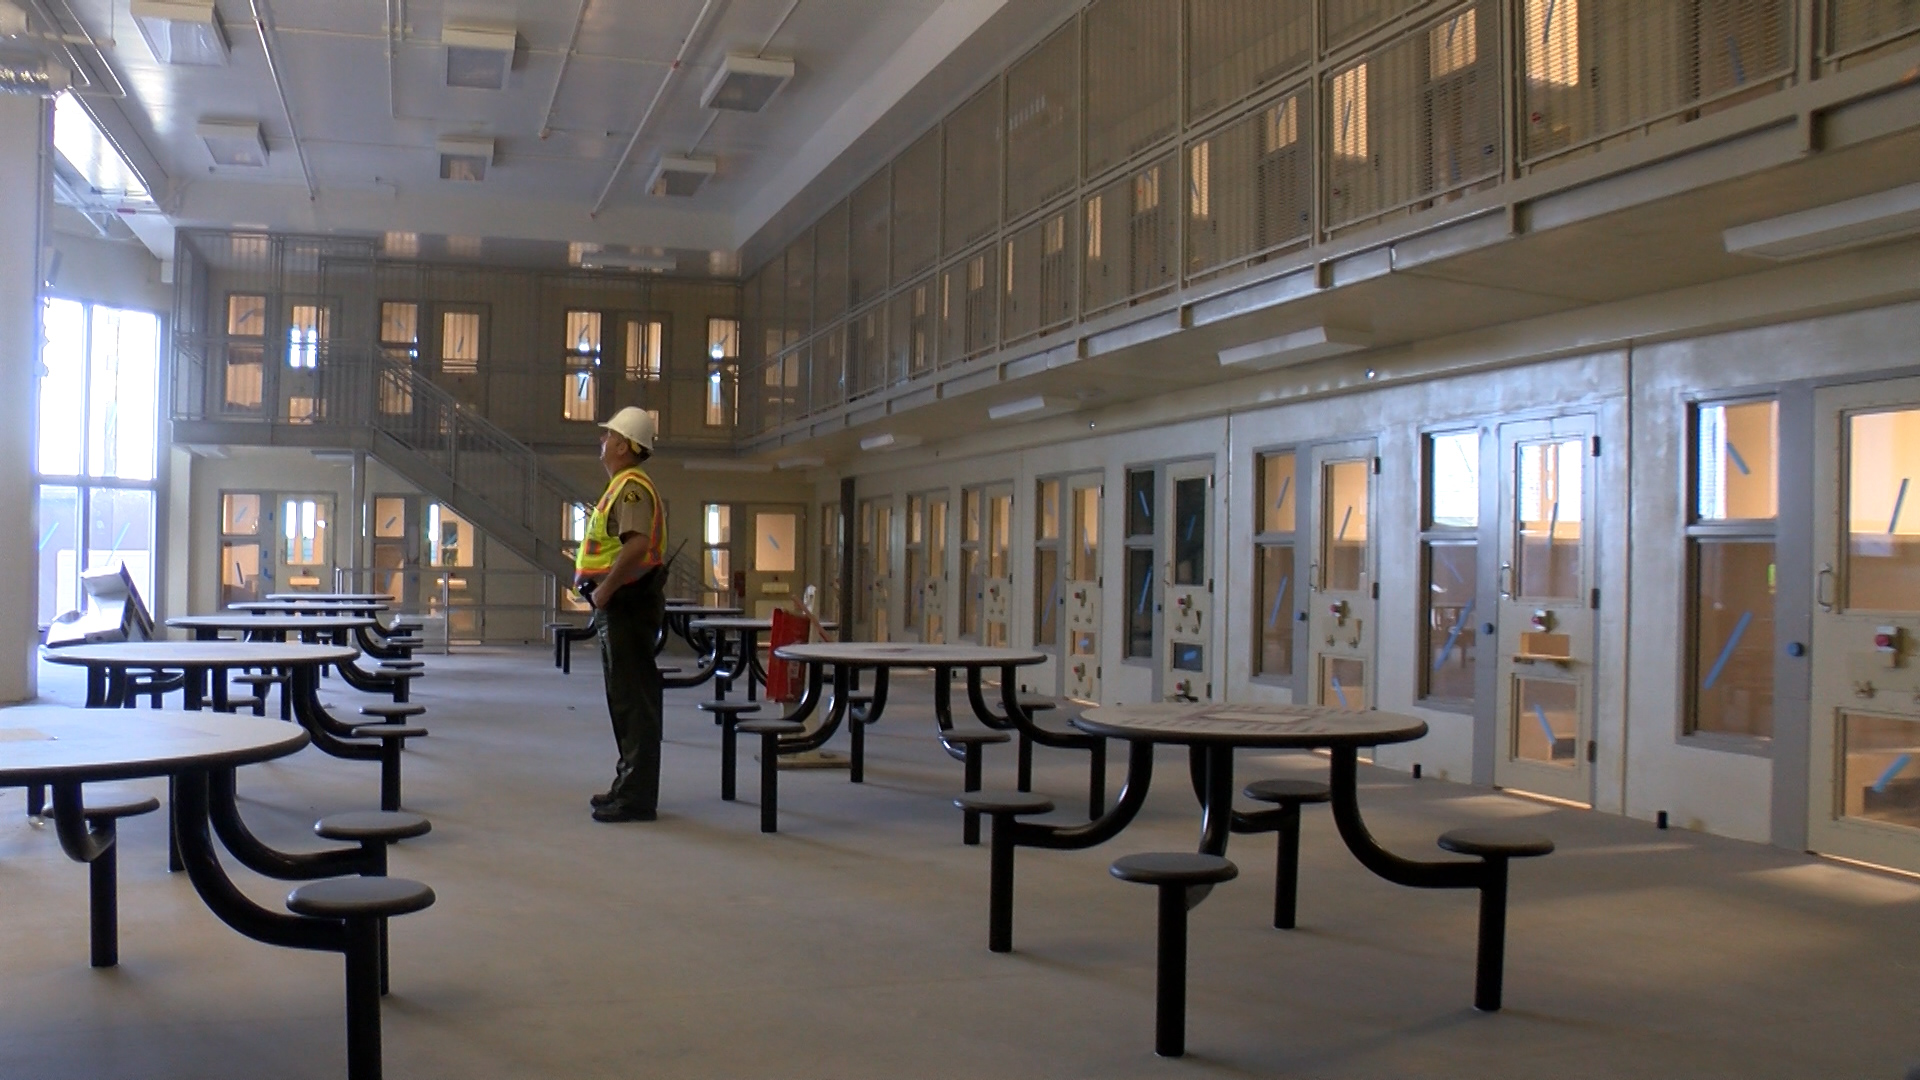 EXCLUSIVE LOOK: New Monterey County jail could open for inmates early summer